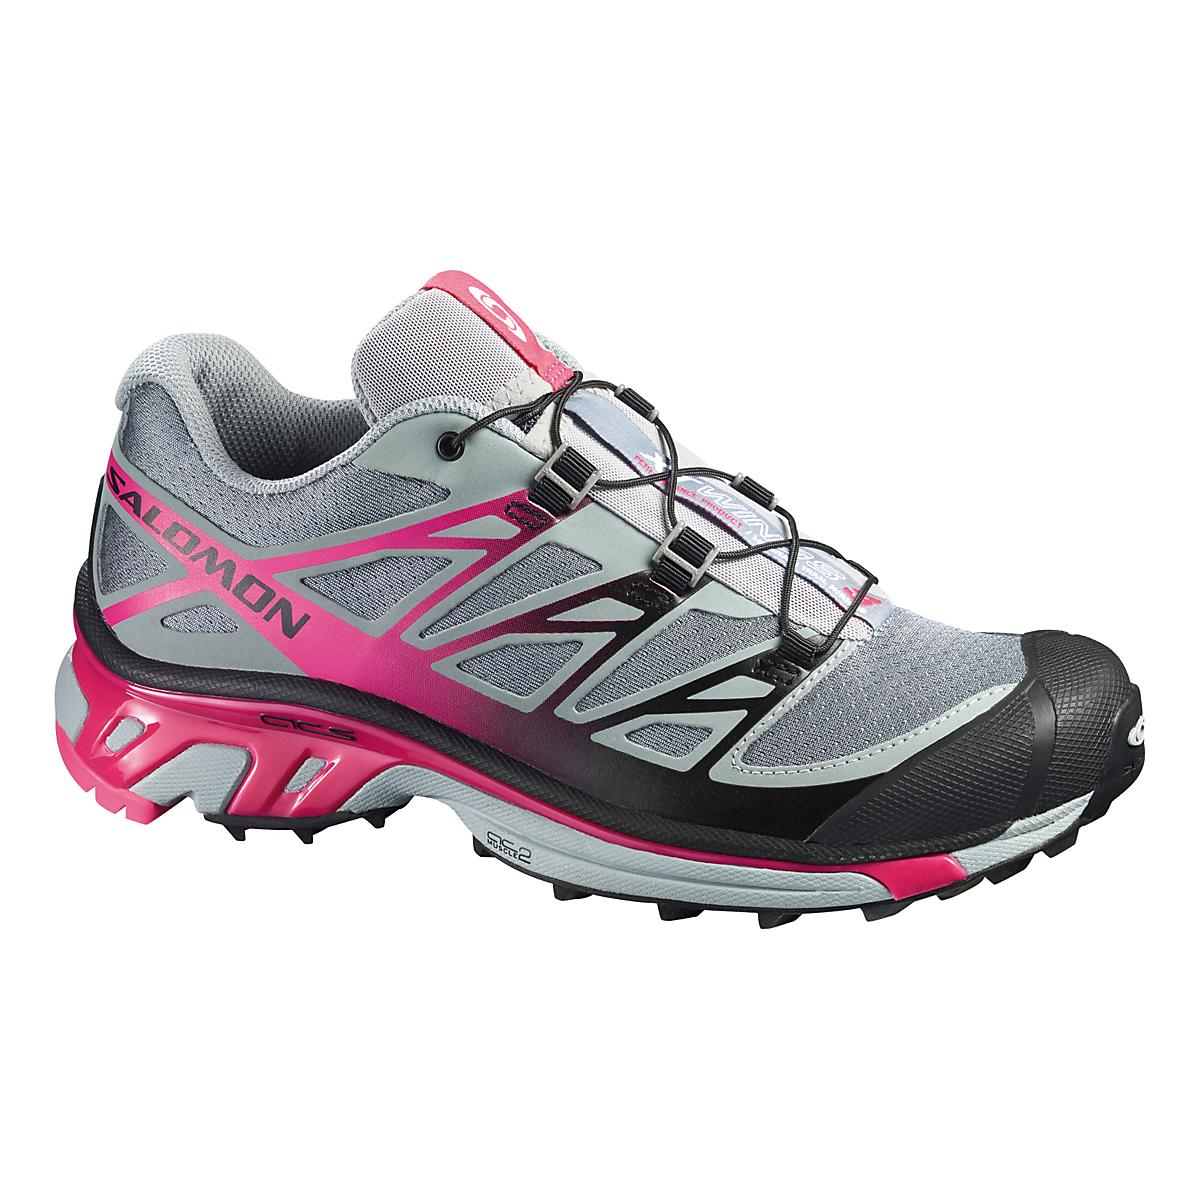 lowest price 33f5b 2a3c6 Womens Salomon XT Wings 3 Trail Running Shoe at Road Runner Sports